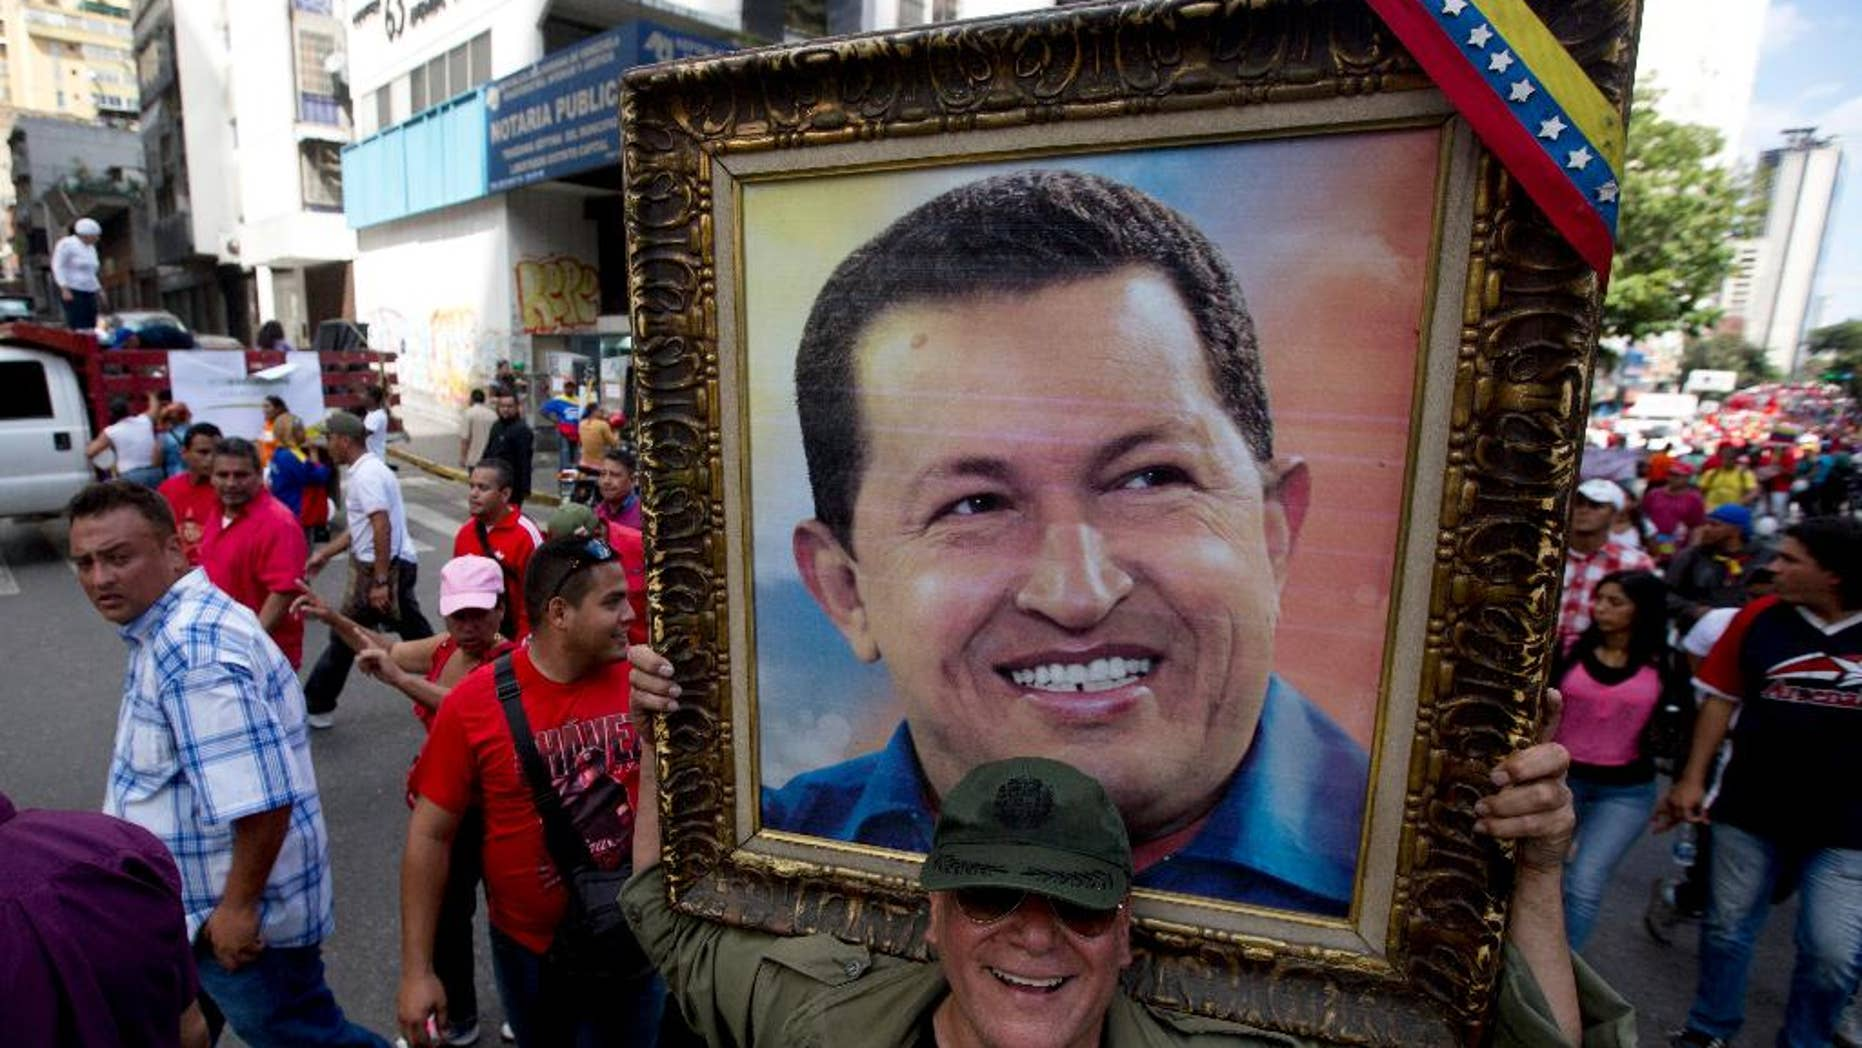 In this Feb. 28, 2015 photo, a man holds a framed image of the late President Hugo Chavez during a pro-government rally outside of the Miraflores presidential palace in Caracas, Venezuela. Venezuelans are commemorating Hugo Chavez on the second anniversary of his death, Thursday, March 5, 2015, even as an economic crisis threatens to undo the former president's legacy of lifting thousands out of poverty. (AP Photo/Fernando Llano)